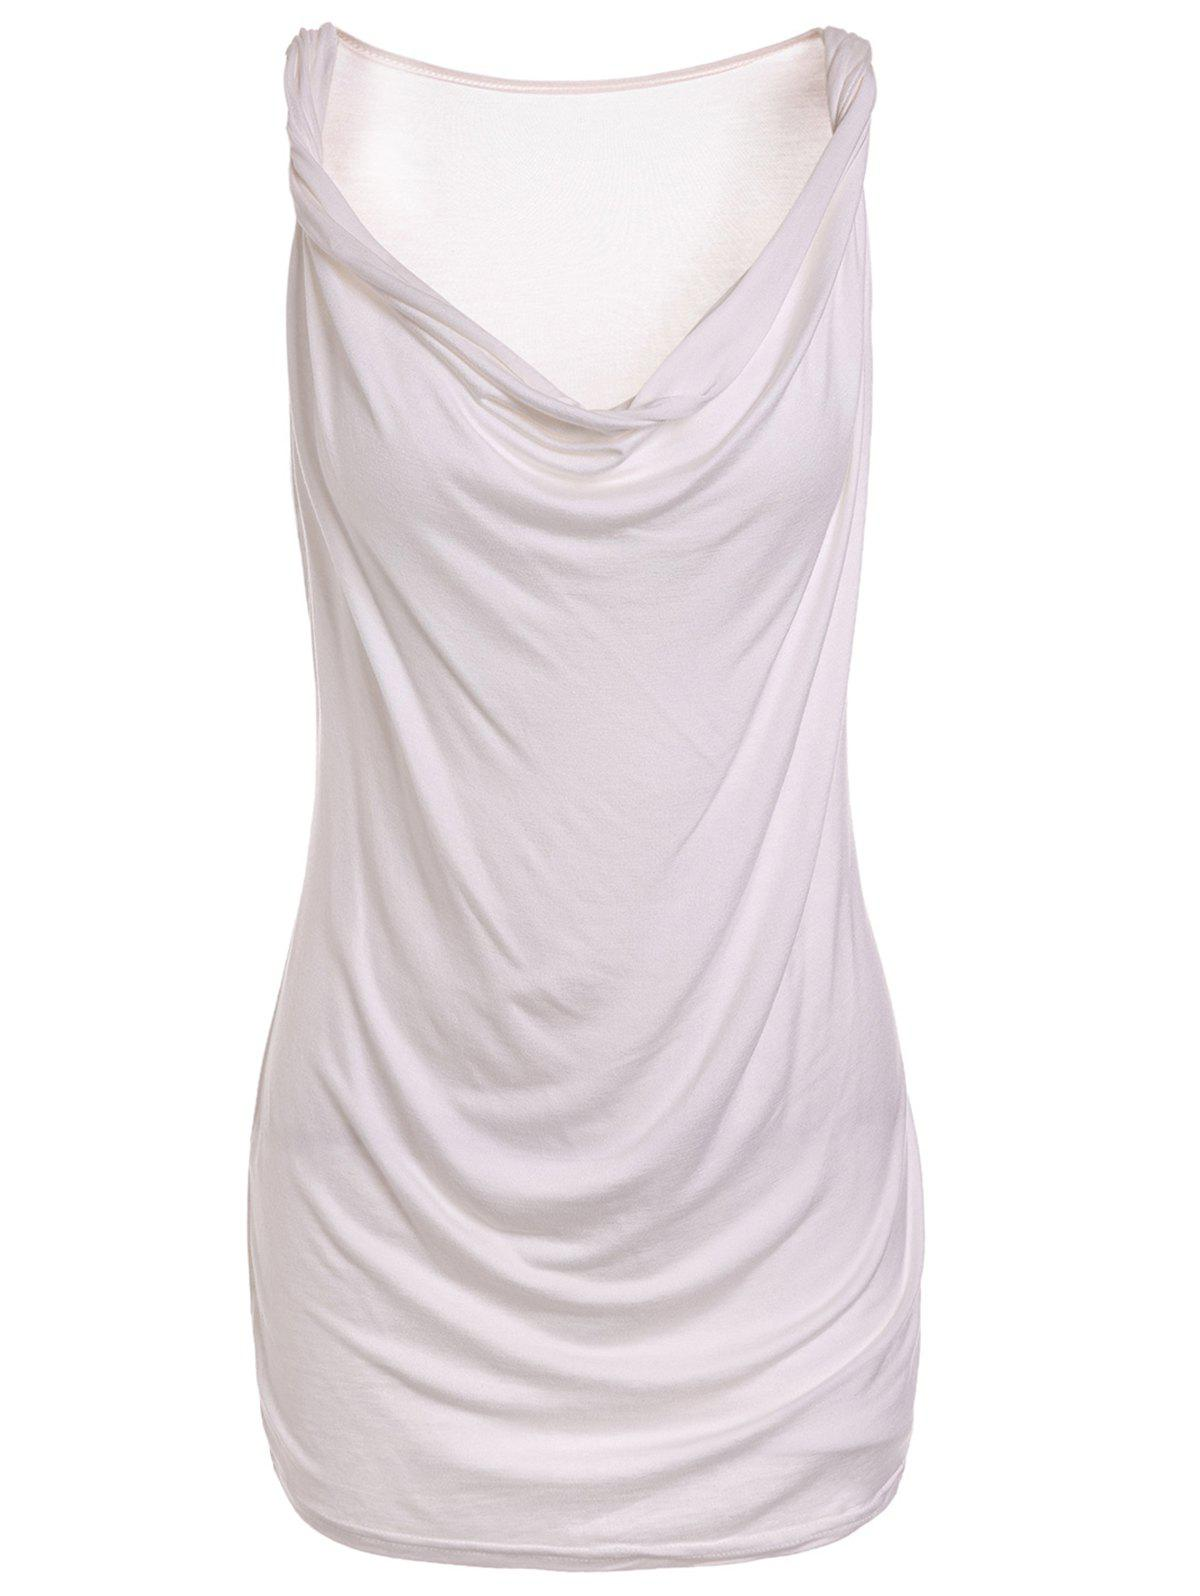 Fashionable Sleeveless Solid Color T-Shirt For Women - WHITE S